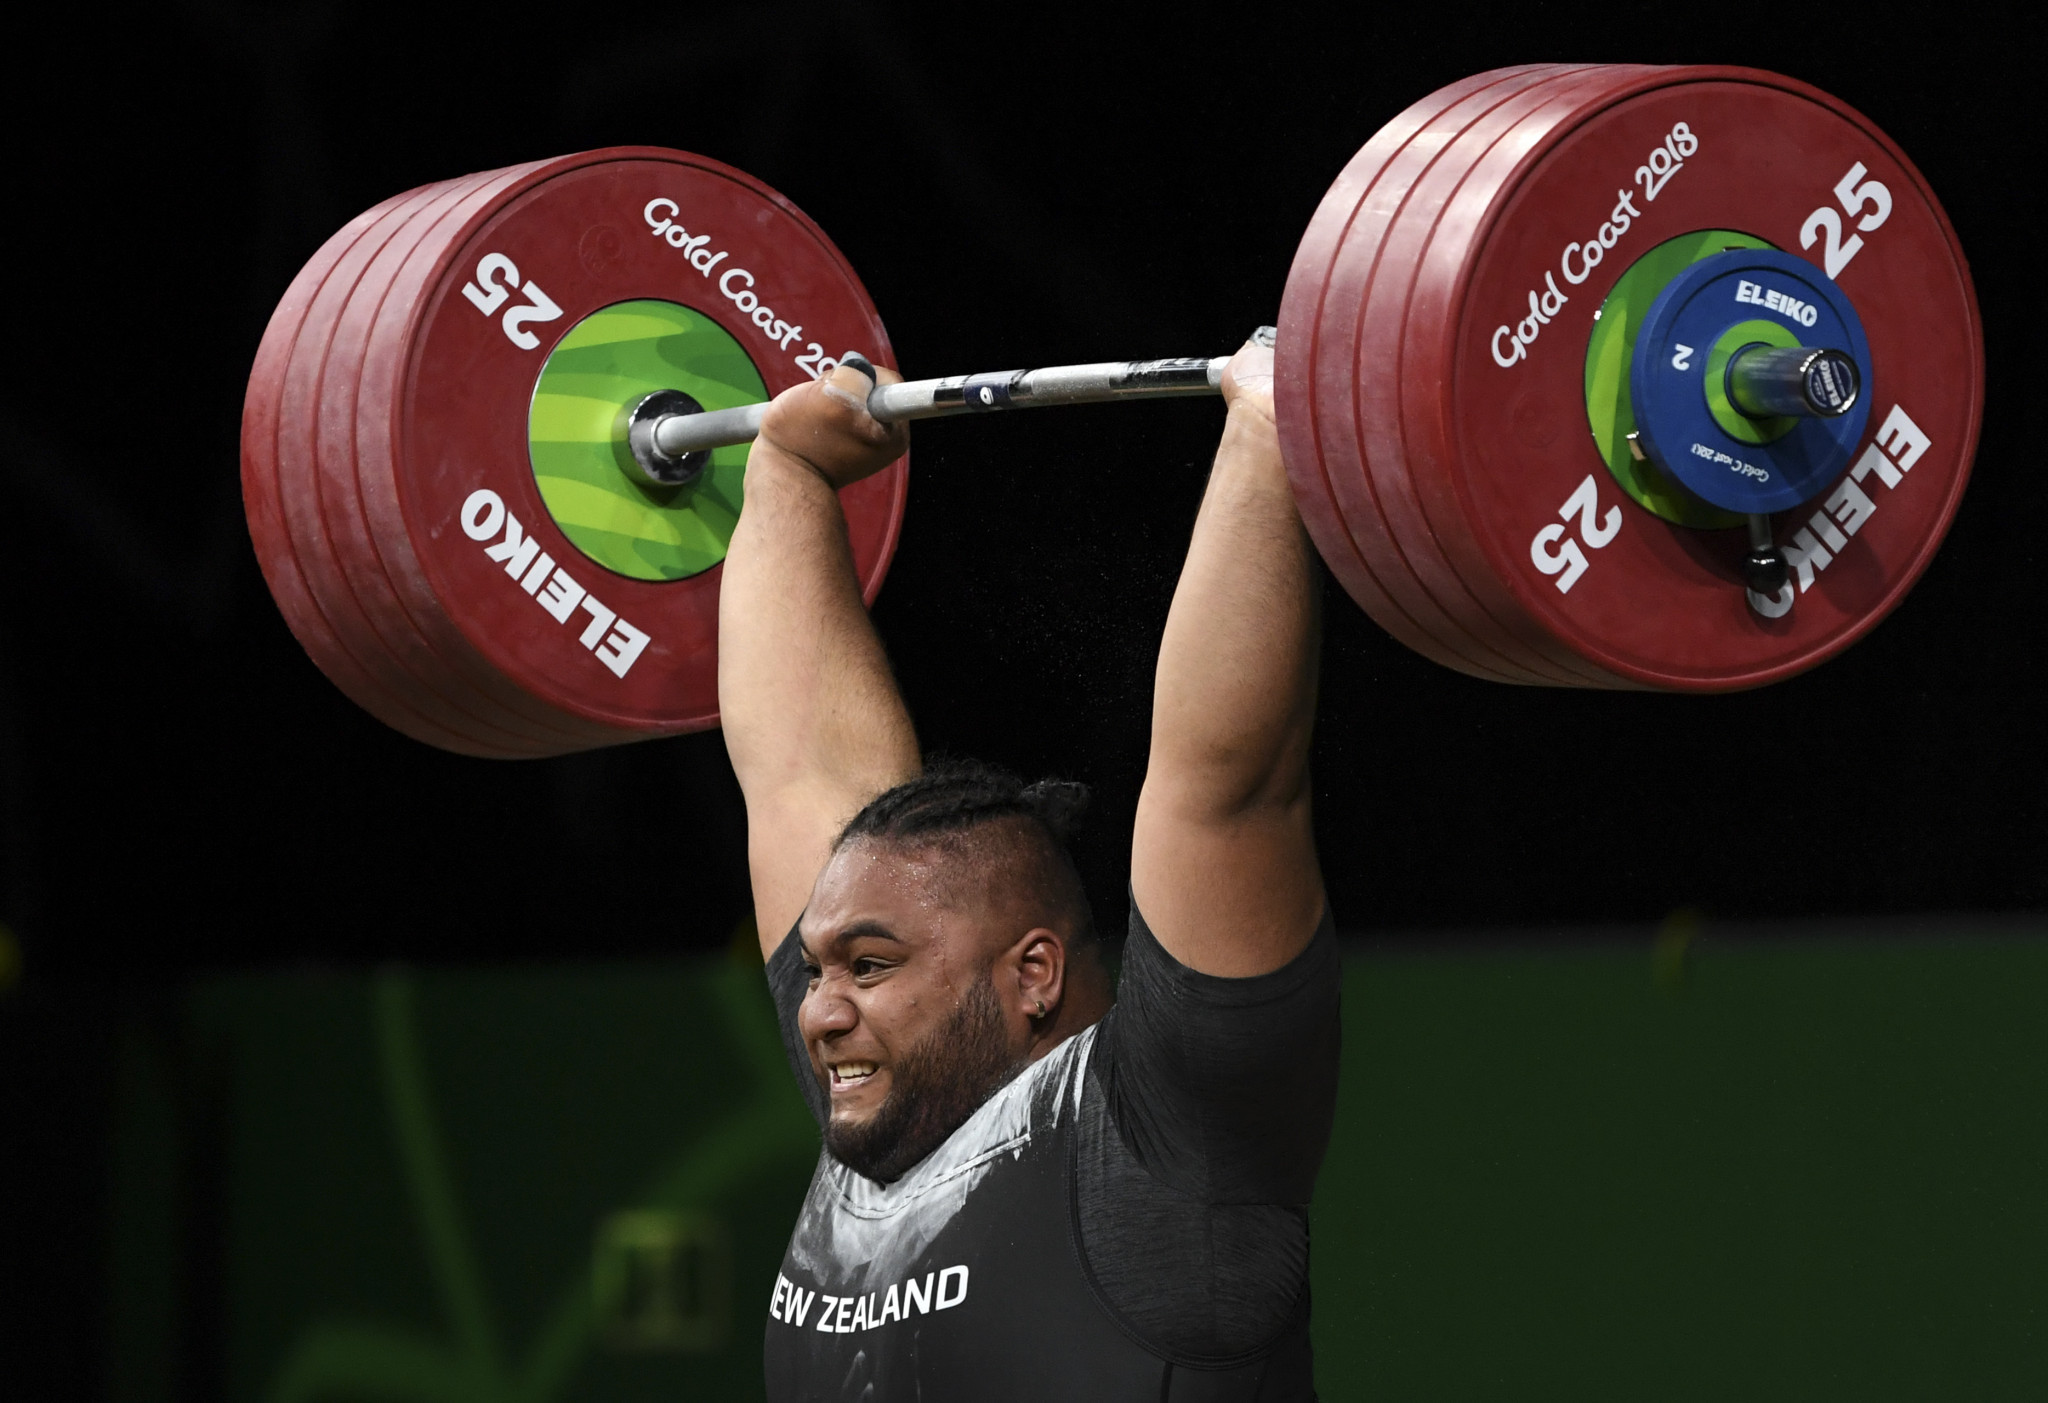 New Zealand's weightlifters have been strongly advised to stay away from Sonny Webster's training clinics ©Getty Images